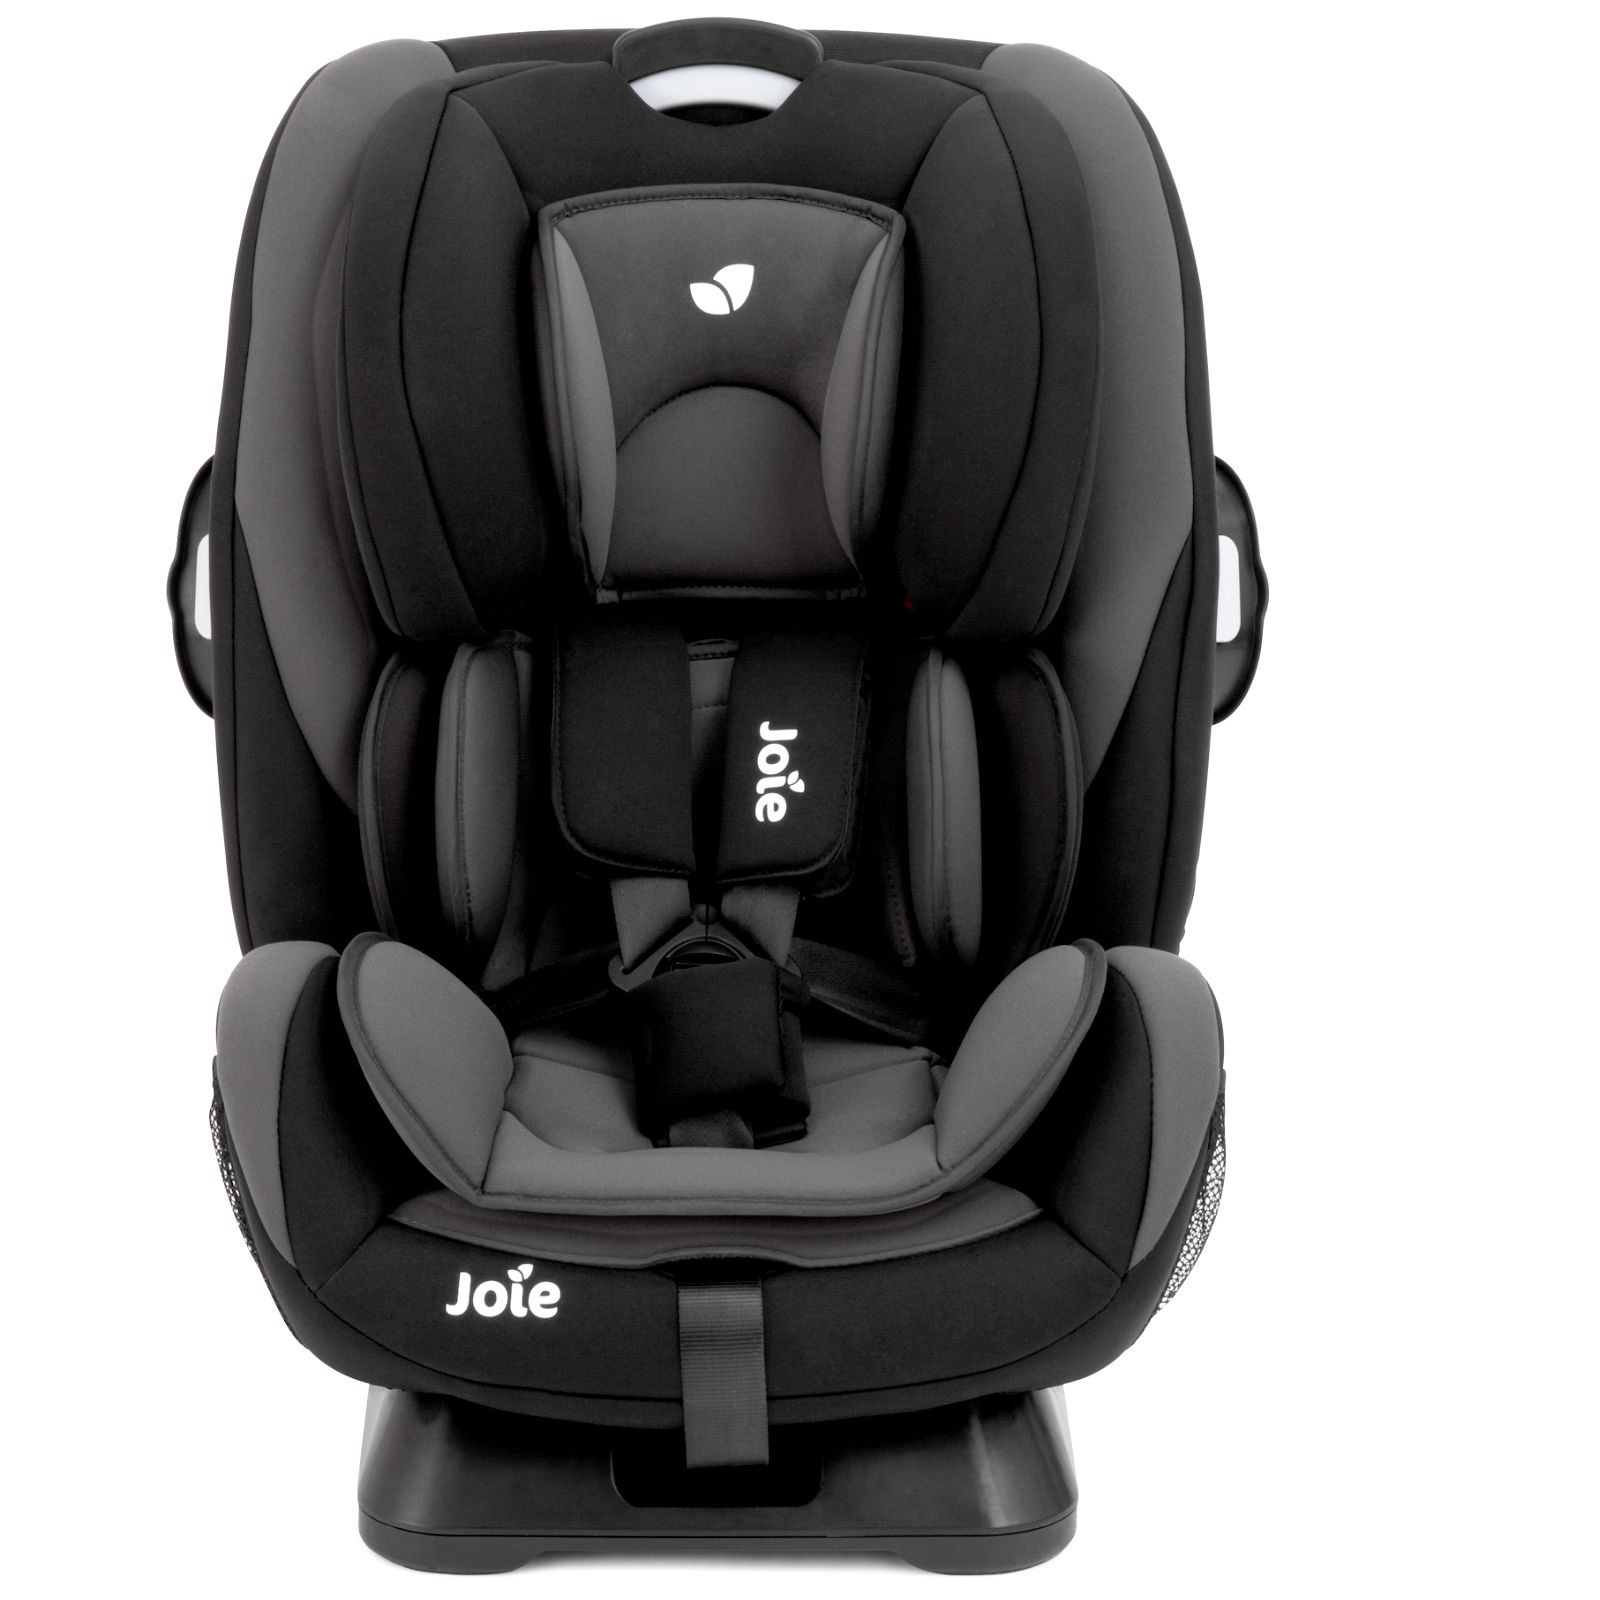 Joie Every Stage Group 0+,1,2,3 Car Seat - Two Tone Black | Buy at ...